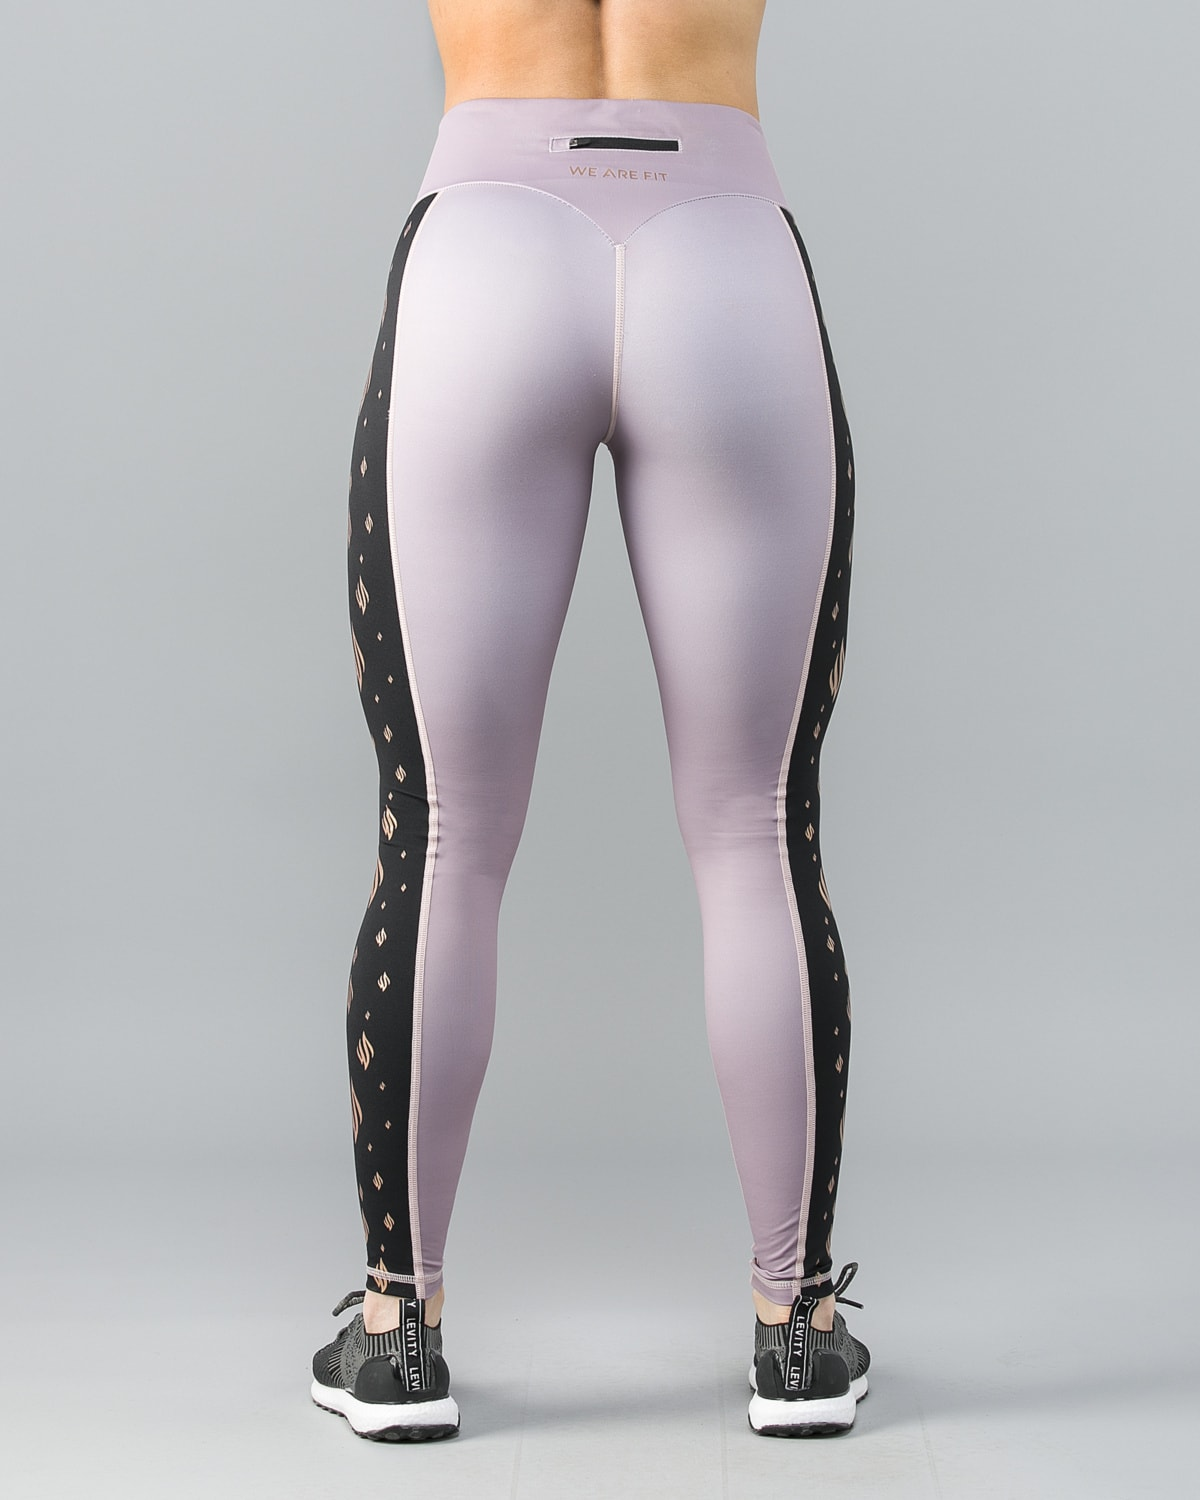 We-Are-Fit-Empower-Rose-Tights3